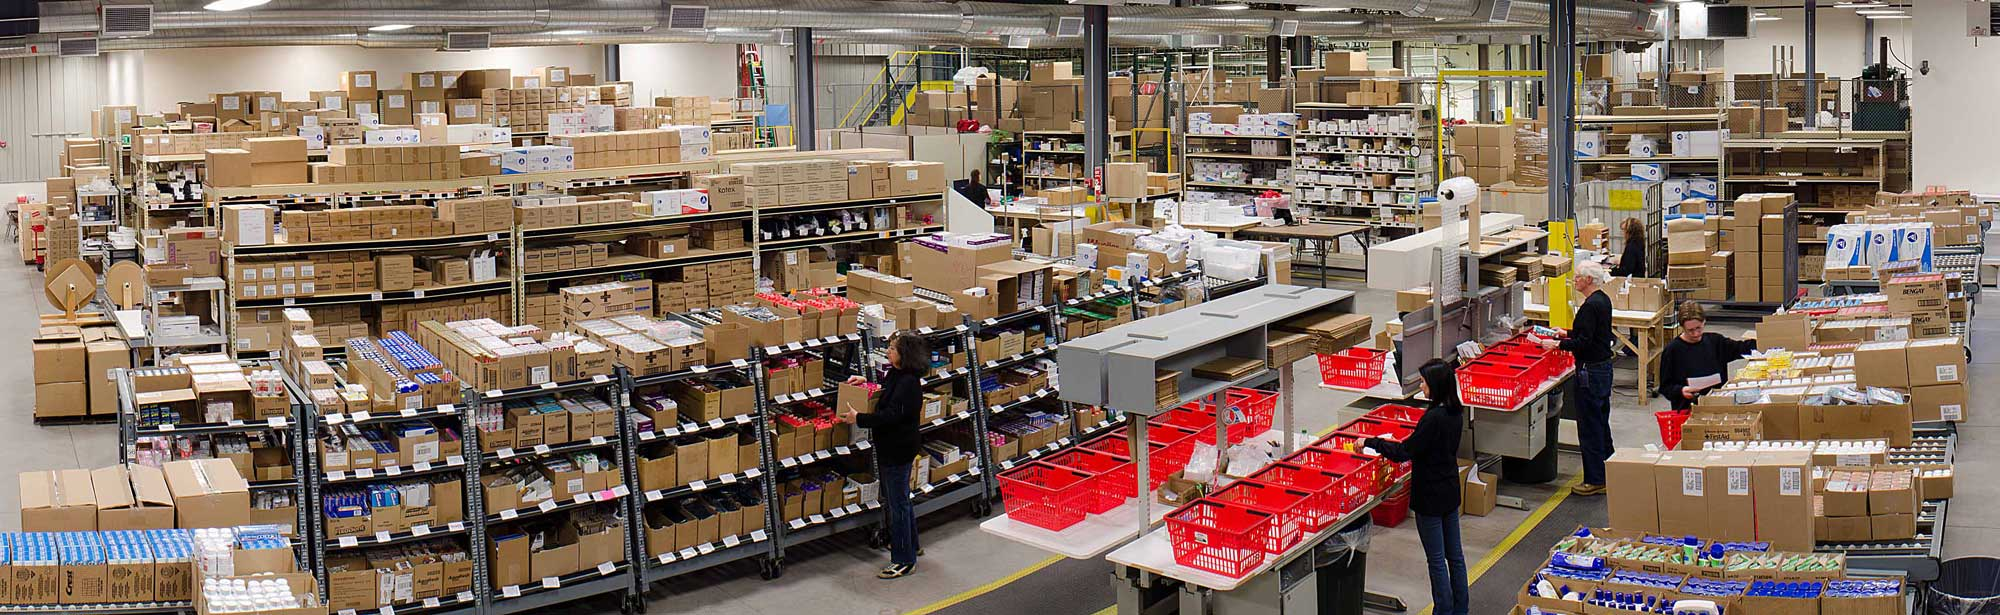 OTC Benefit Solutions Fulfillment Center